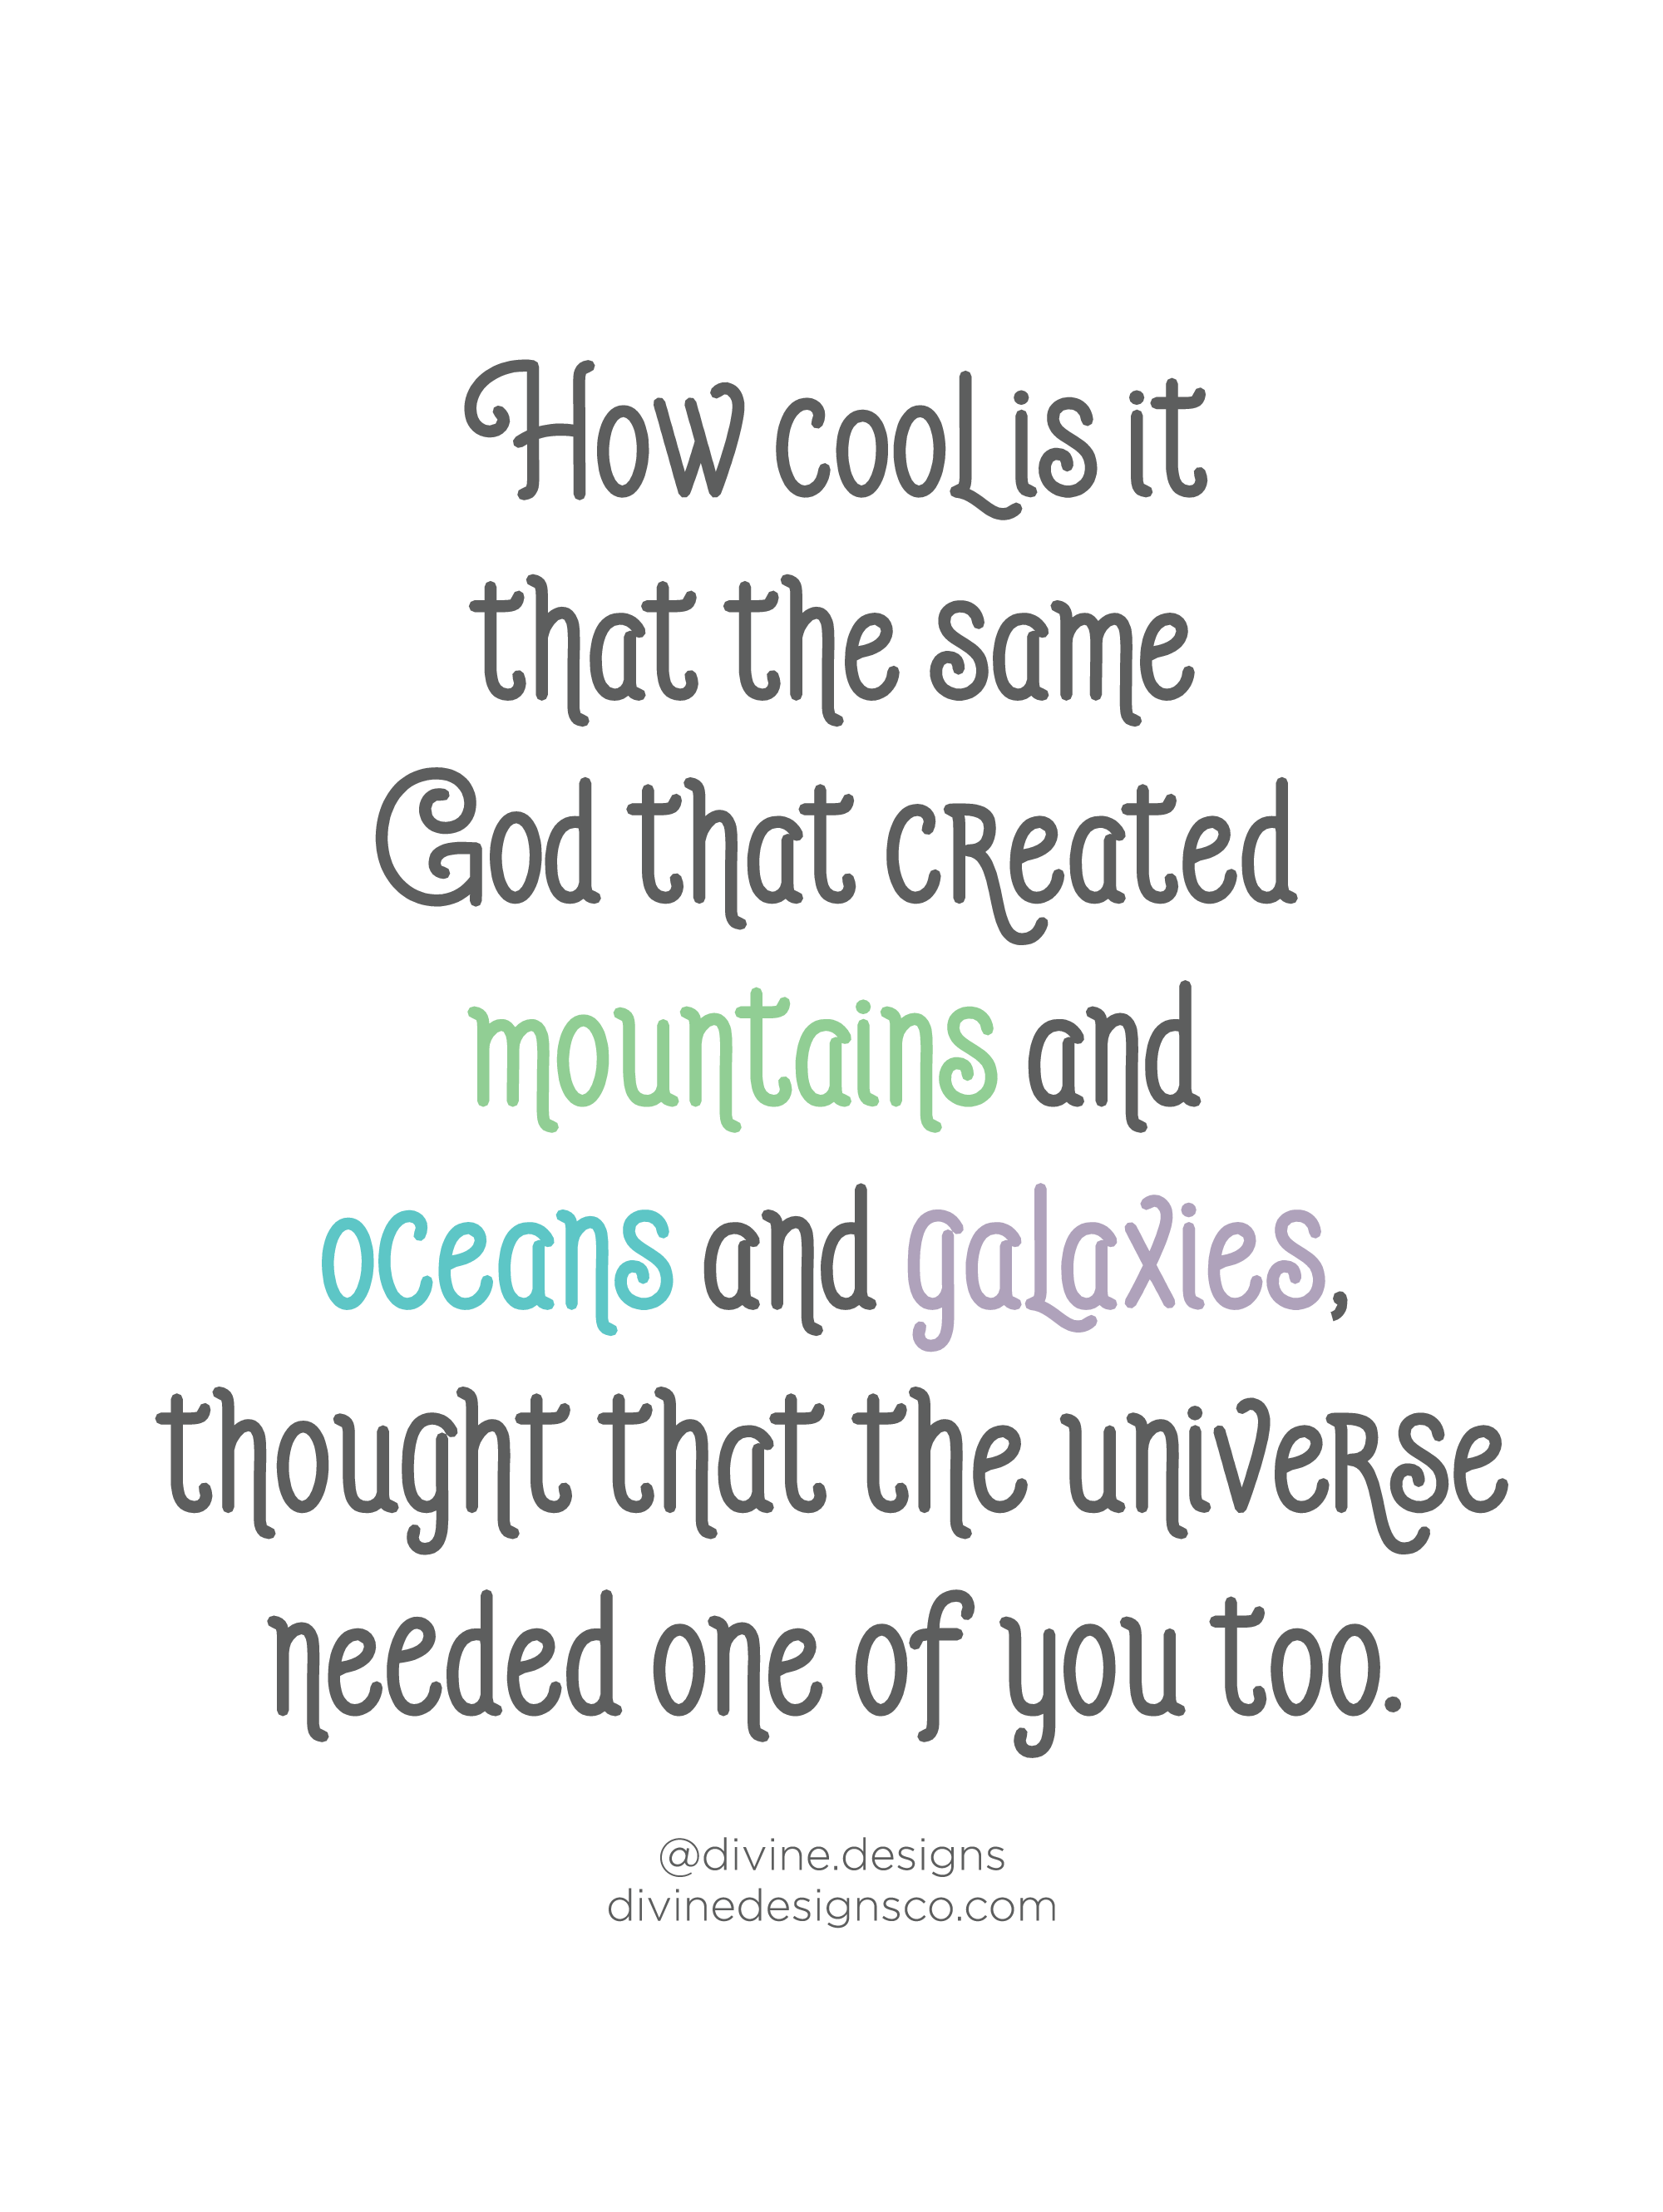 How cool is it that the same God that created mountains and